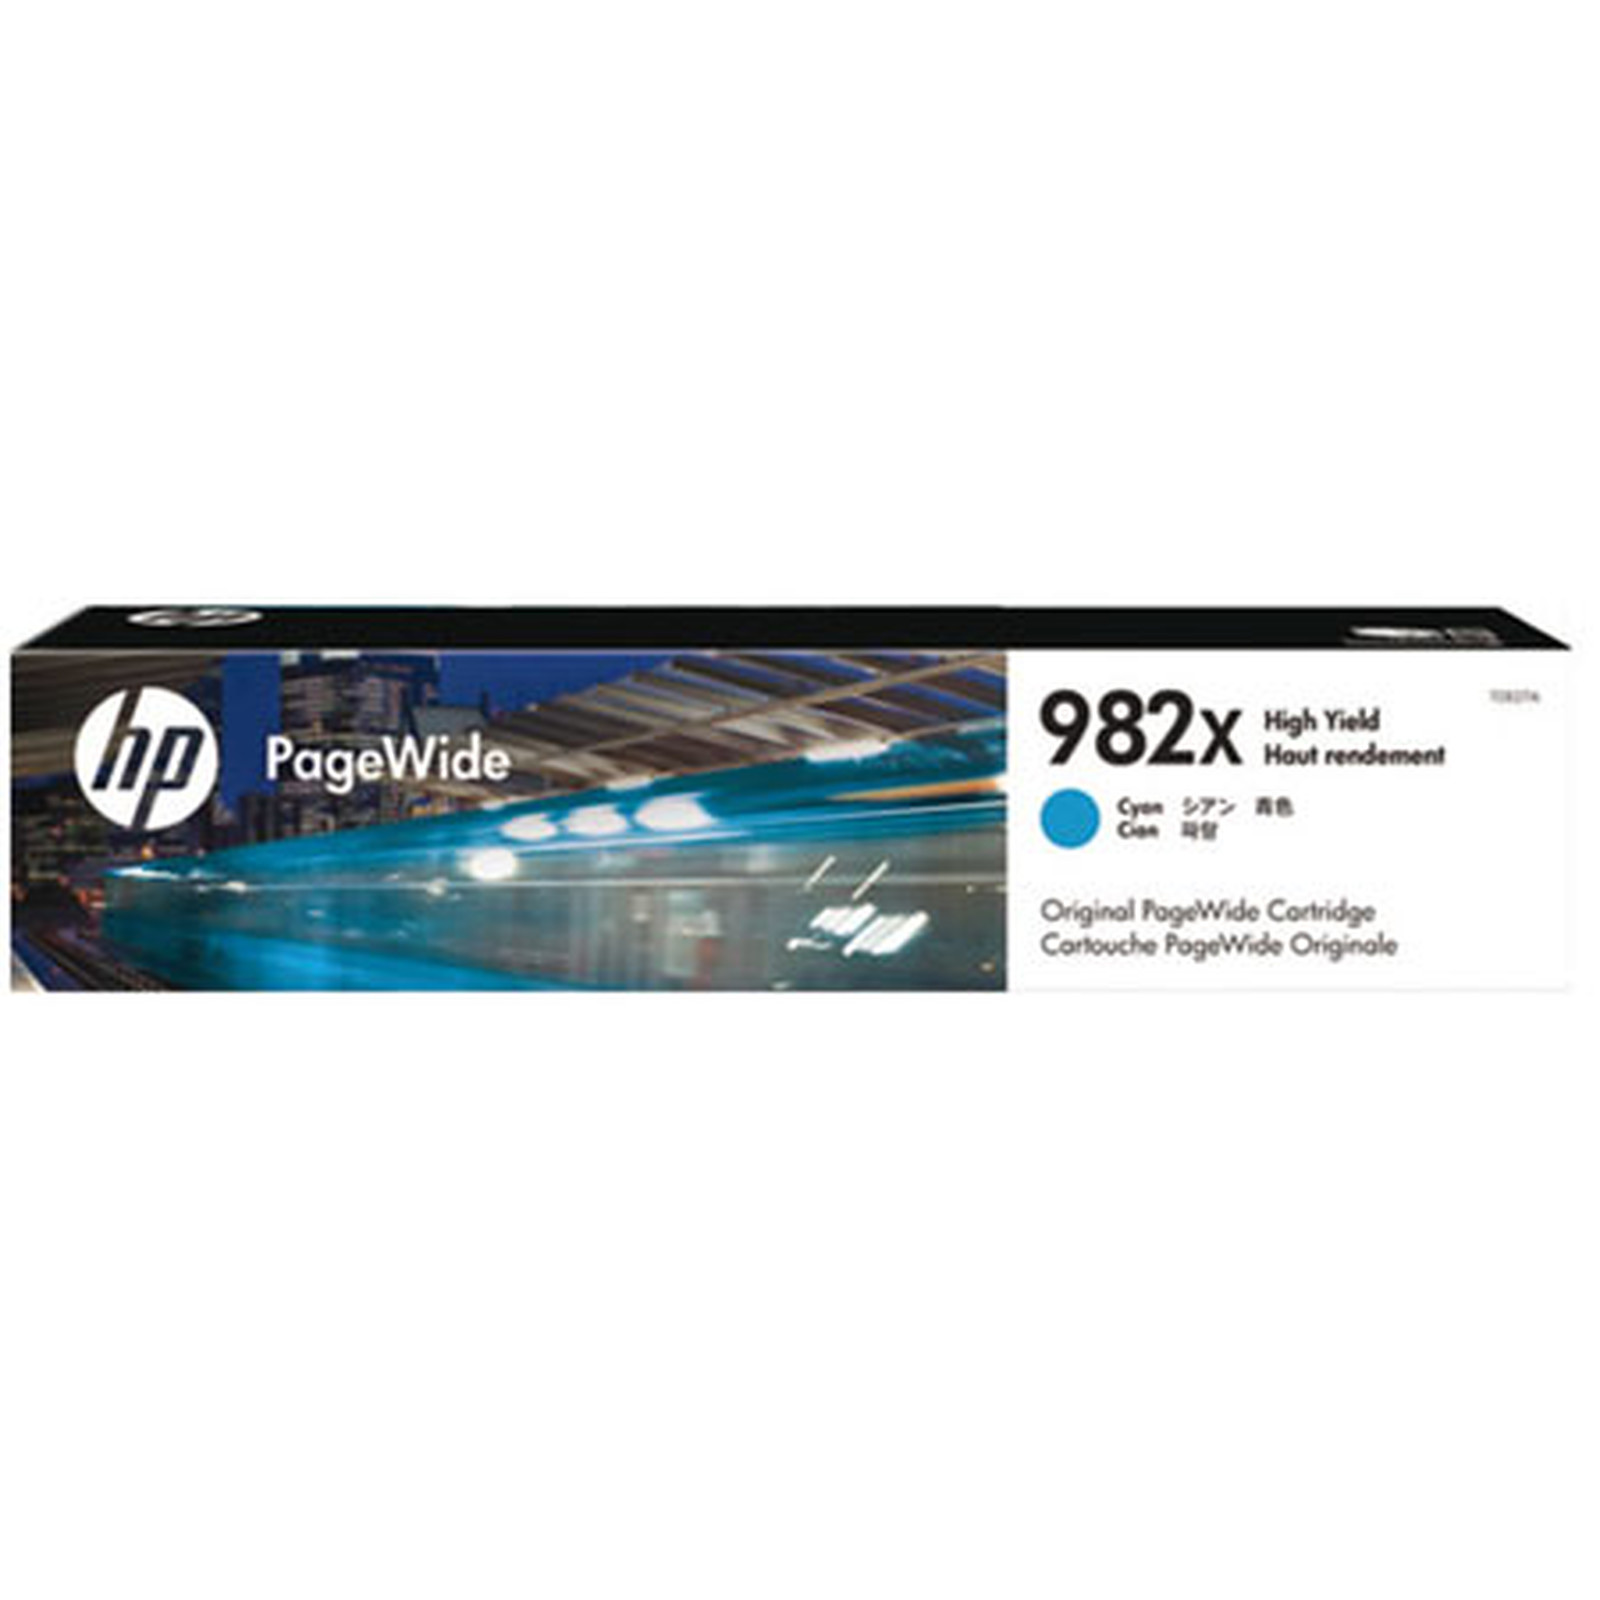 HP PageWide HP 982X (T0B27A)